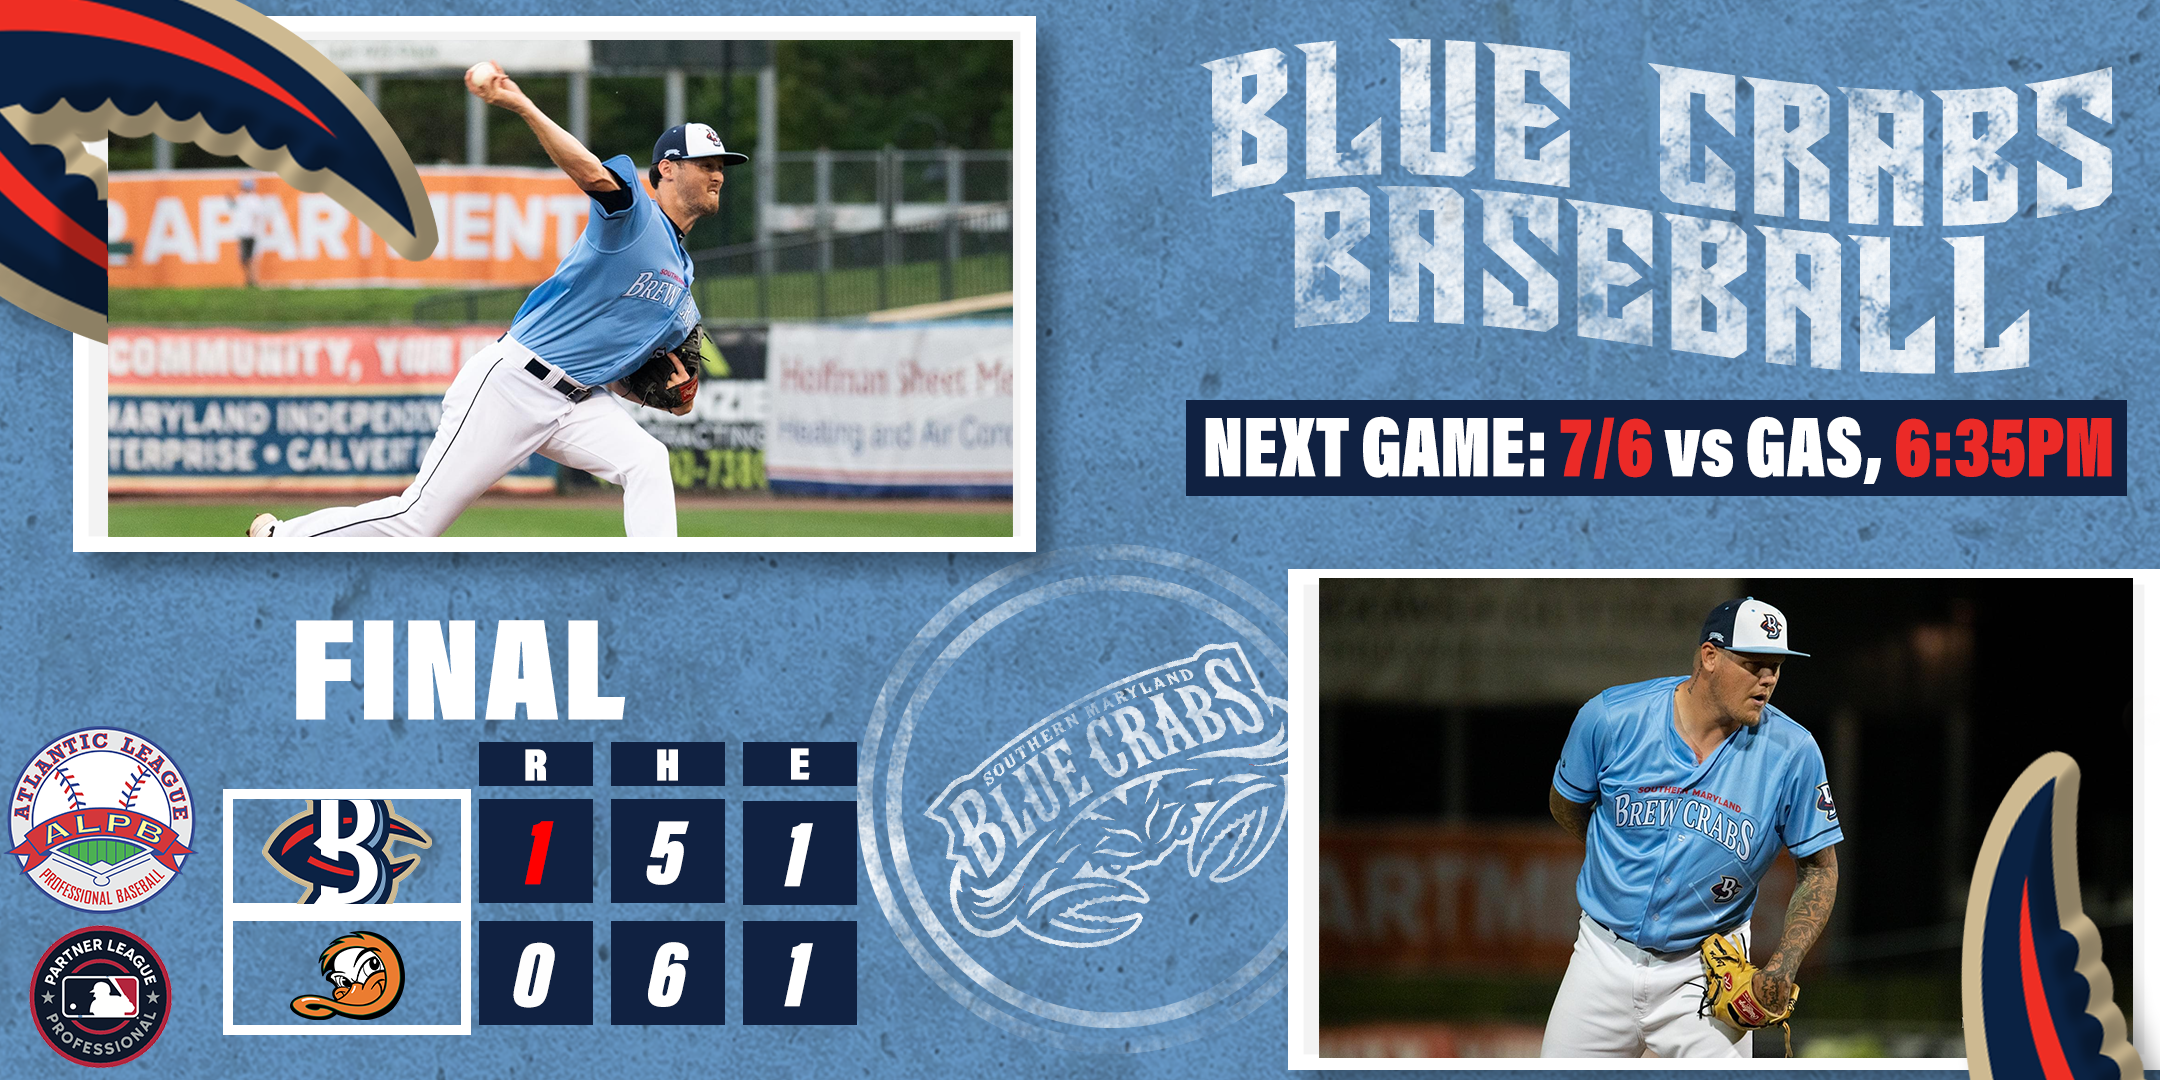 Blue Crabs Tip Toe To 1-0 Win, Retake First Place